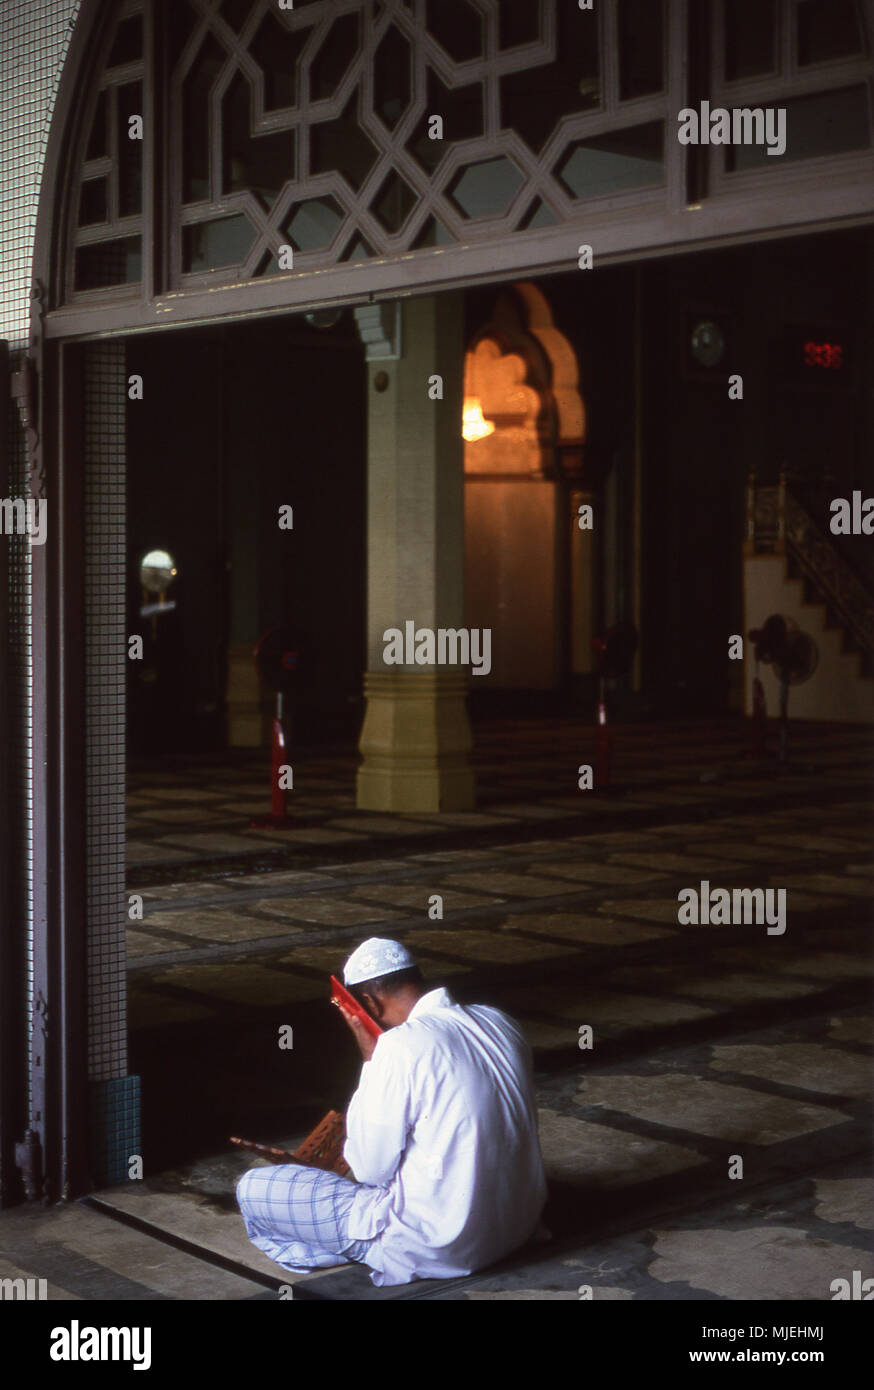 Man praying in a Mosque Stock Photo: 183488722 - Alamy